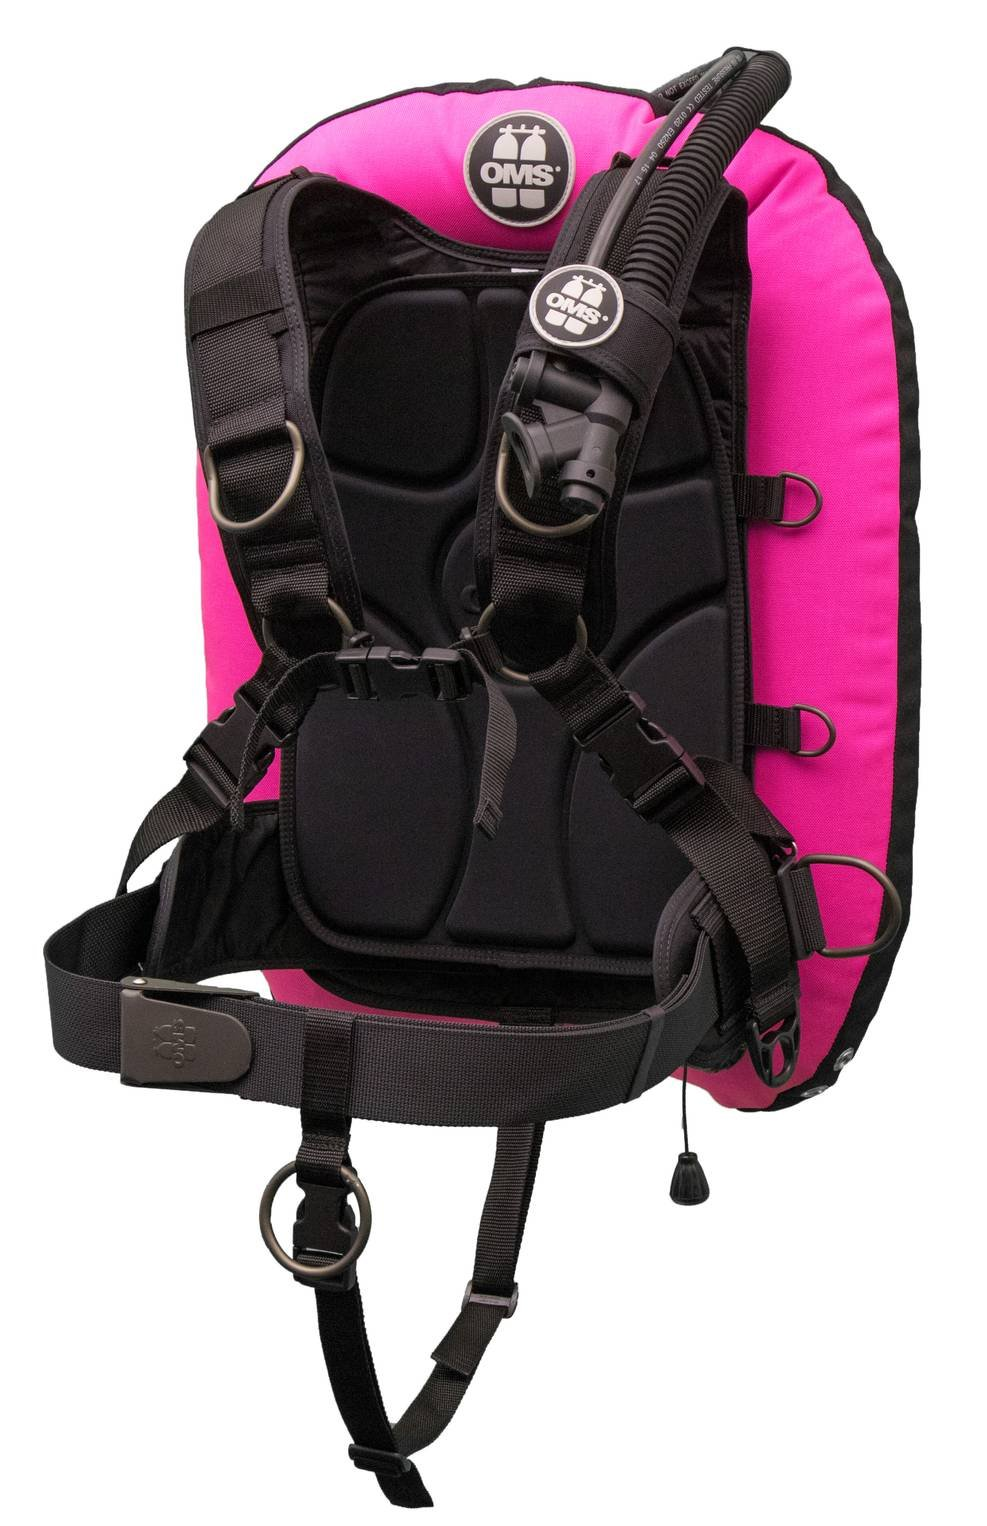 OMS SIGNATURE SERIES BCD